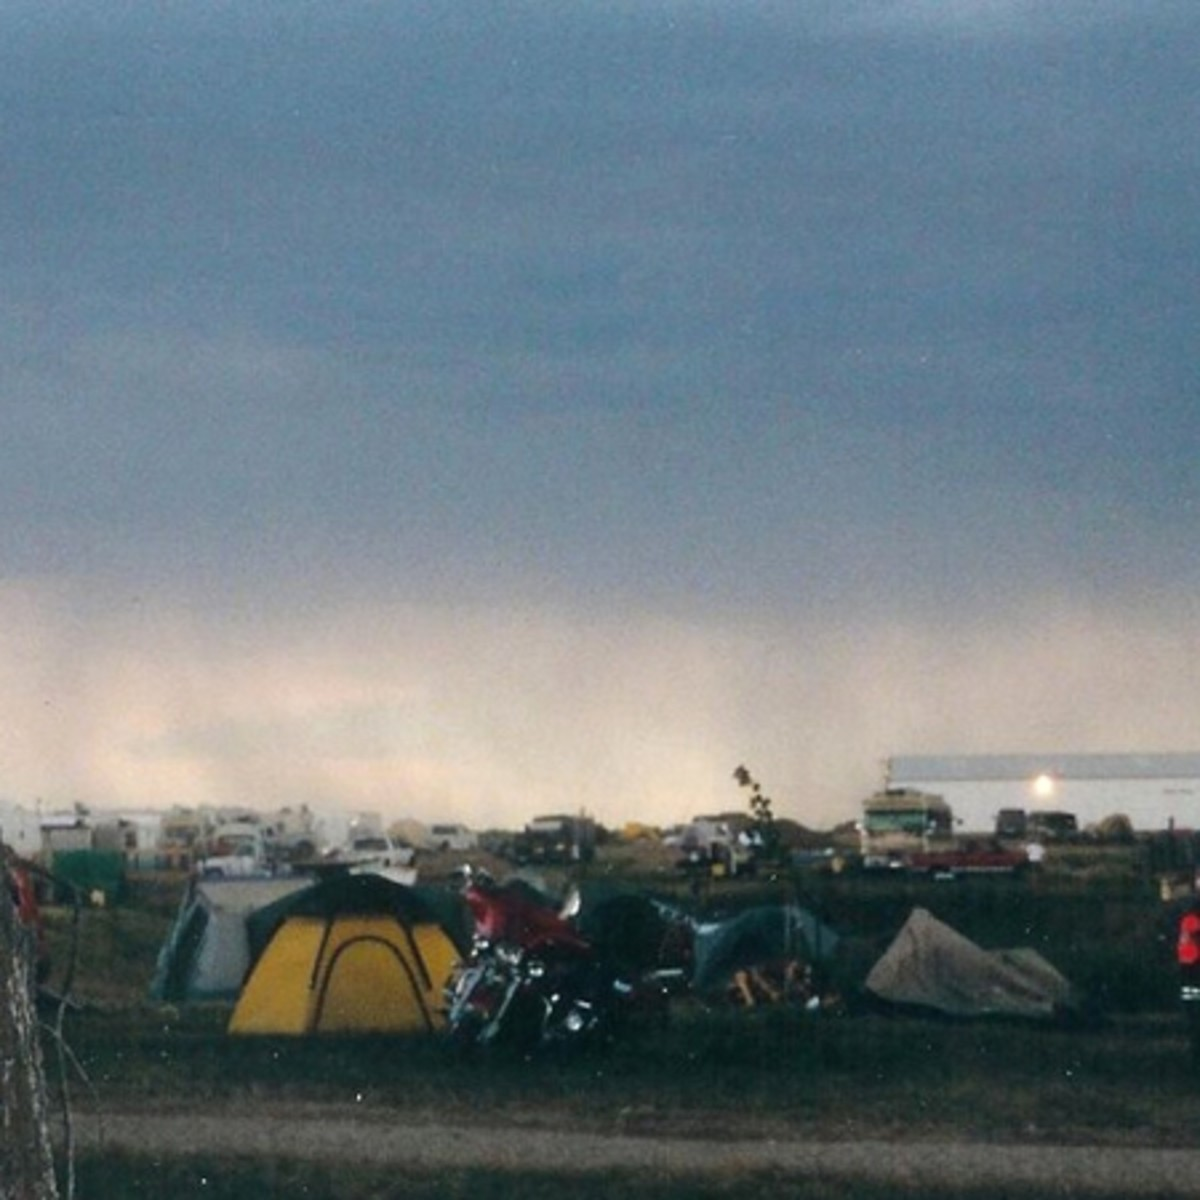 We'd just arrived at Buffalo Chip pitched the tent when this storm blew in